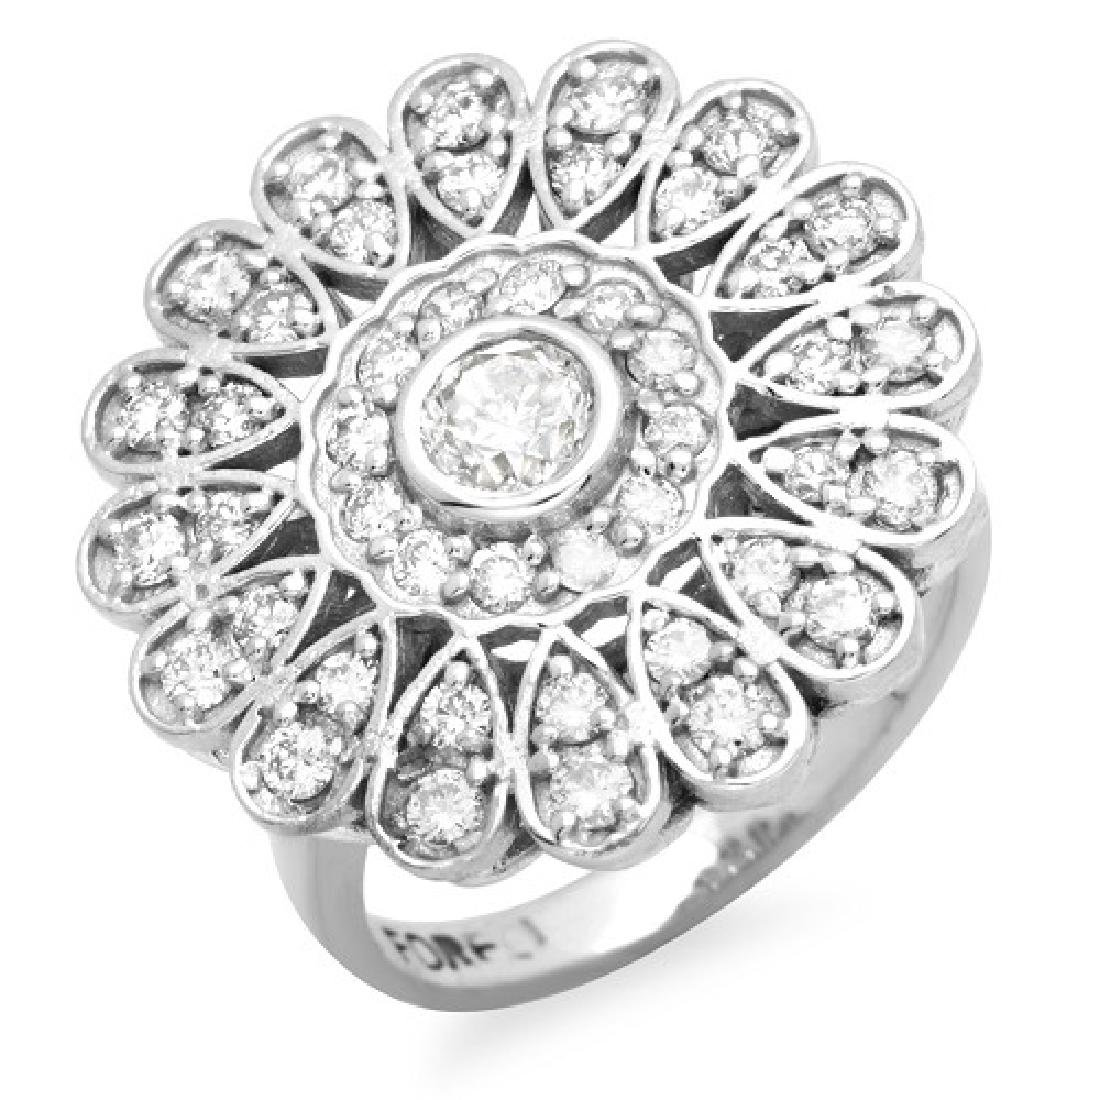 1.25 Carat Natural Diamond 18K Solid White Gold Ring